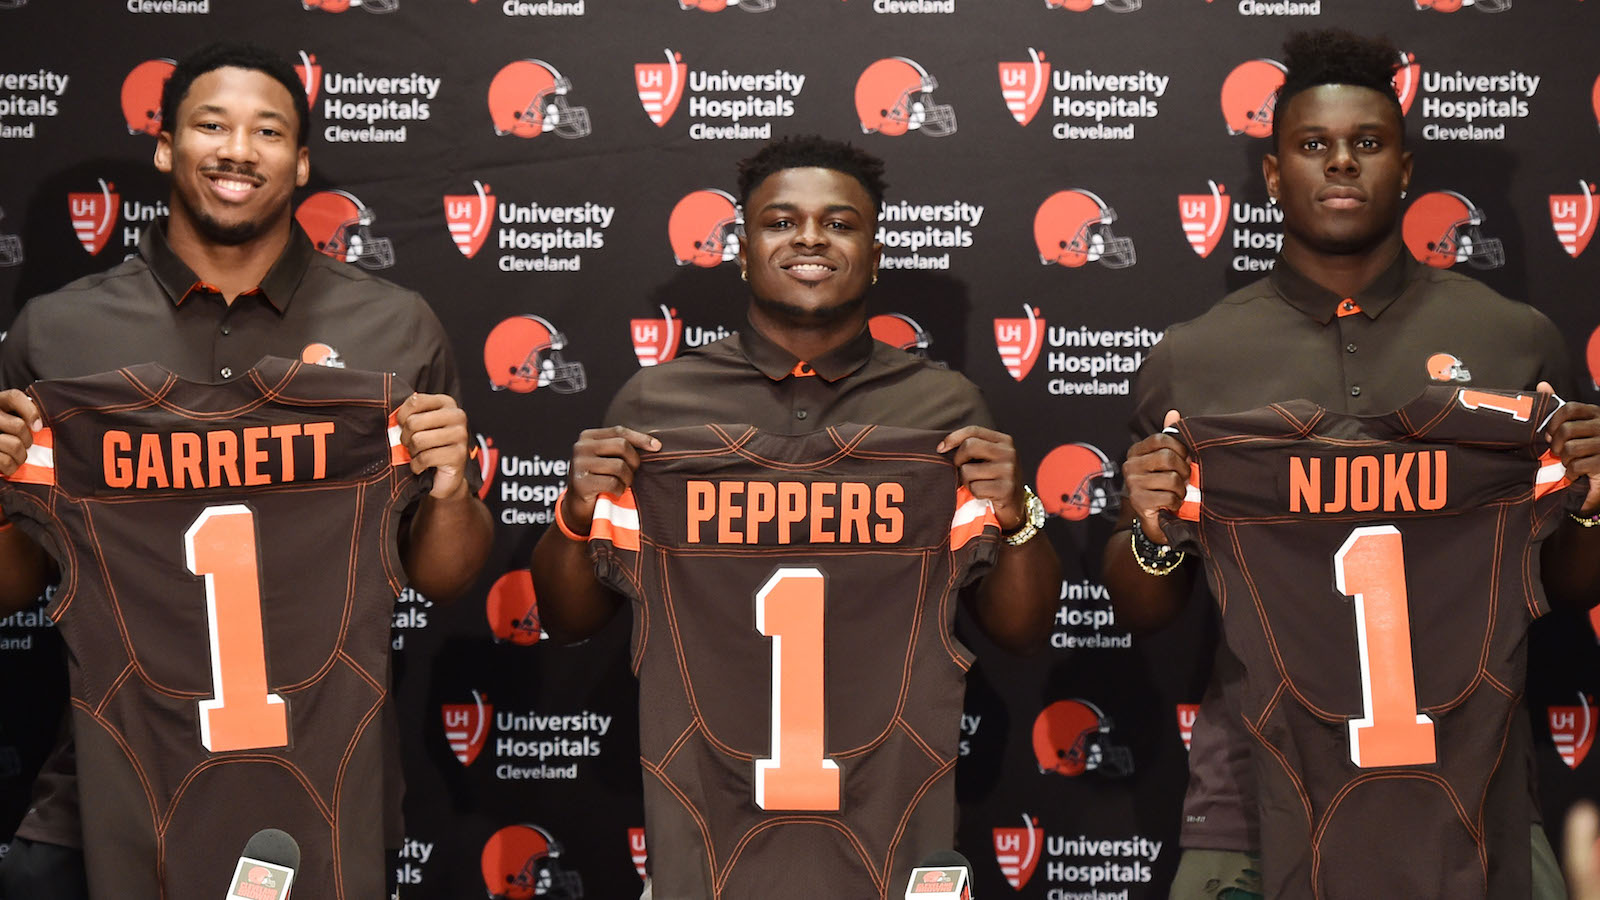 Apr 28, 2017; Berea, OH, USA; Cleveland Browns first round picks defensive lineman Myles Garrett and defensive back Jabrill Peppers and tight end David Njoku display their jerseys to the media at the Cleveland Browns training facility. Mandatory Credit: Ken Blaze-USA TODAY Sports